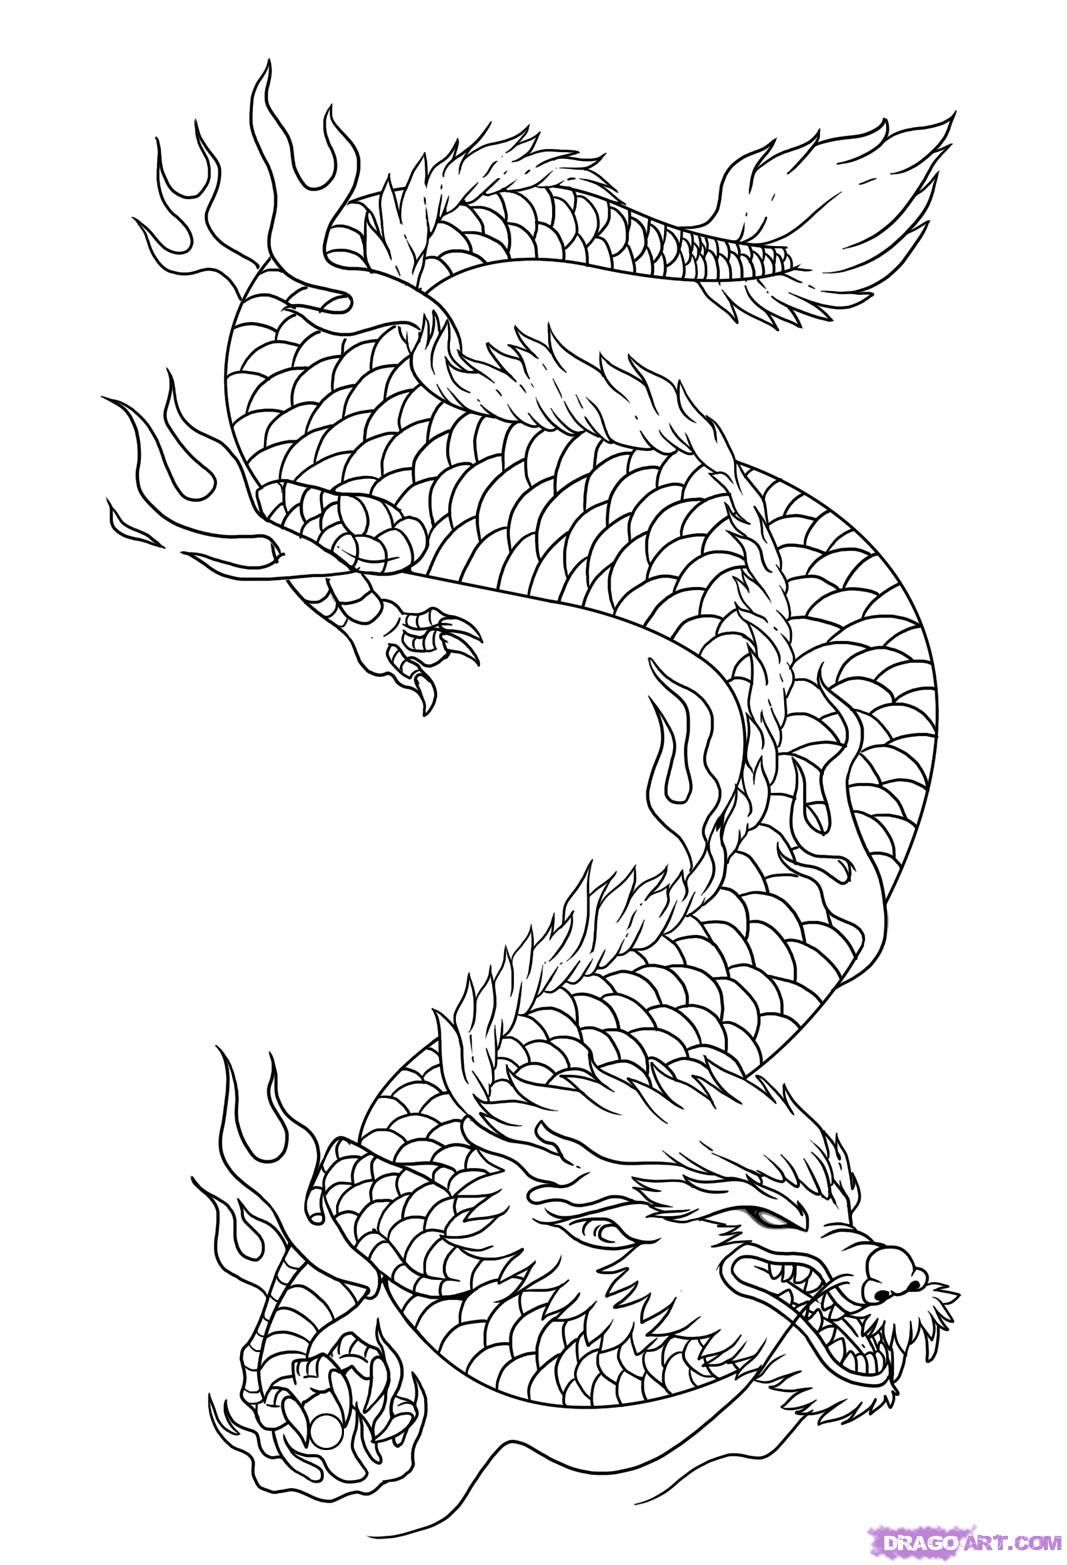 How To Draw Dragon Art, Step by Step, Drawing Guide, by